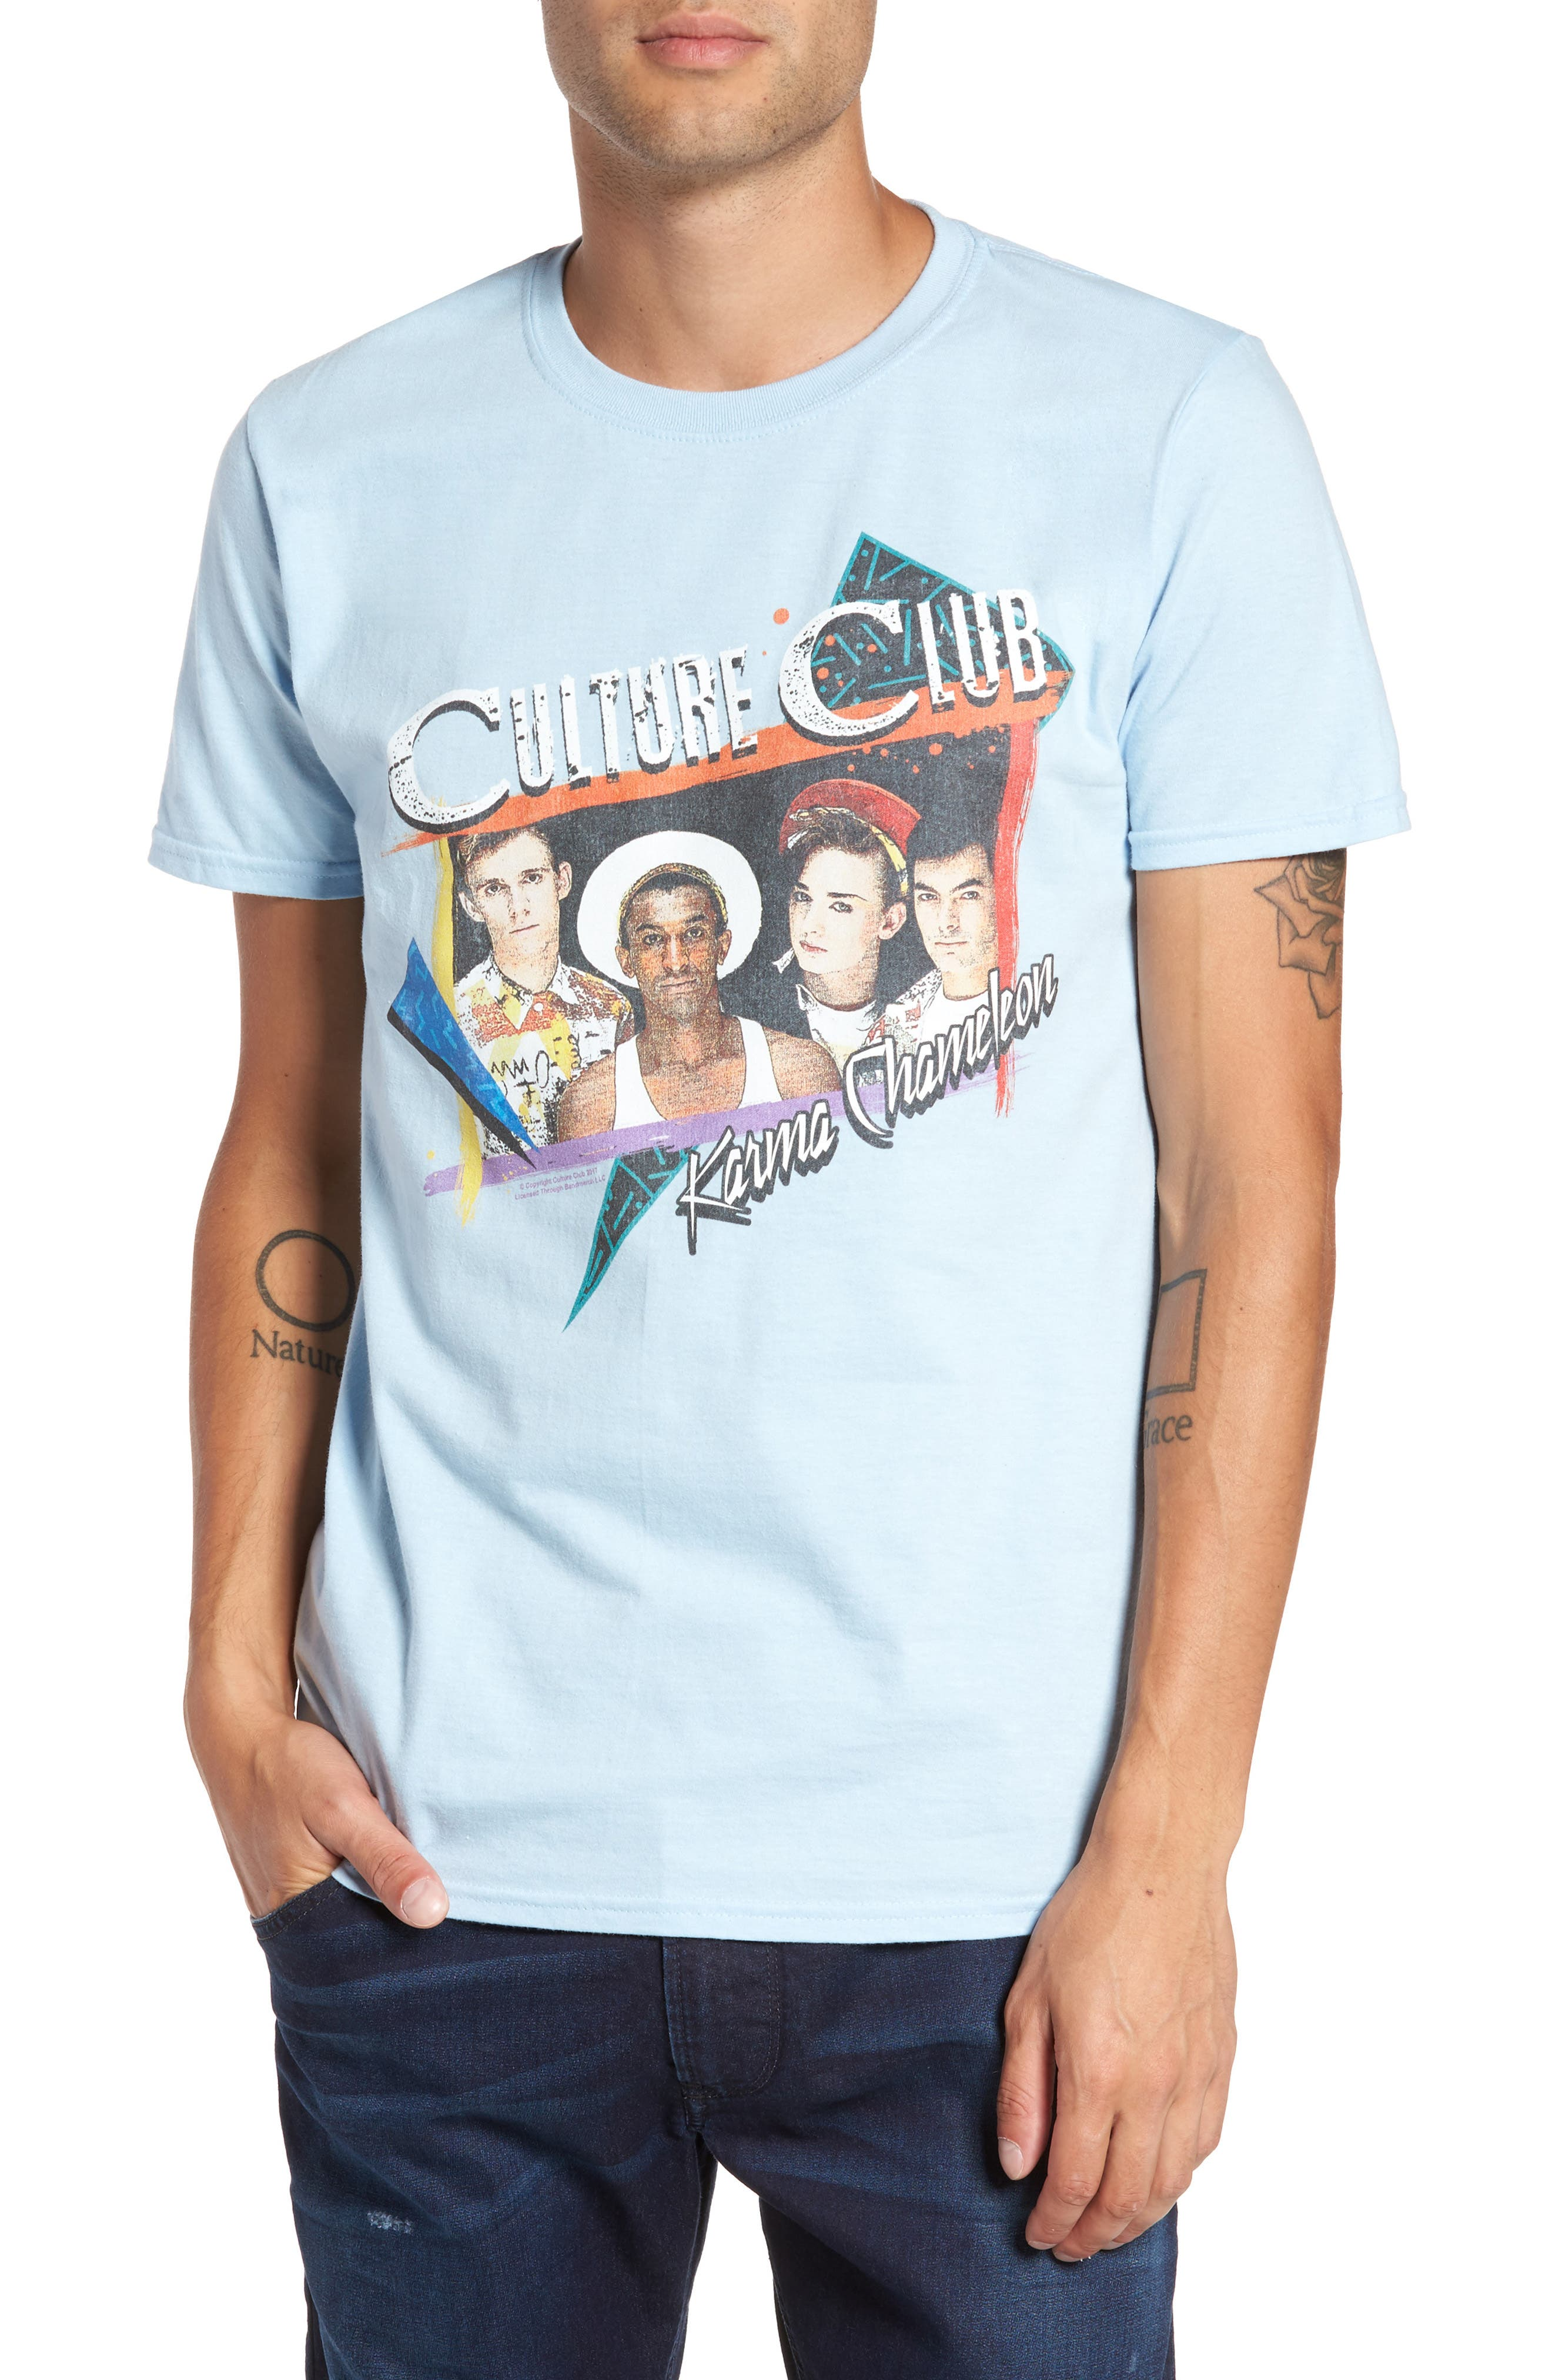 The Rail Culture Club Graphic T-Shirt